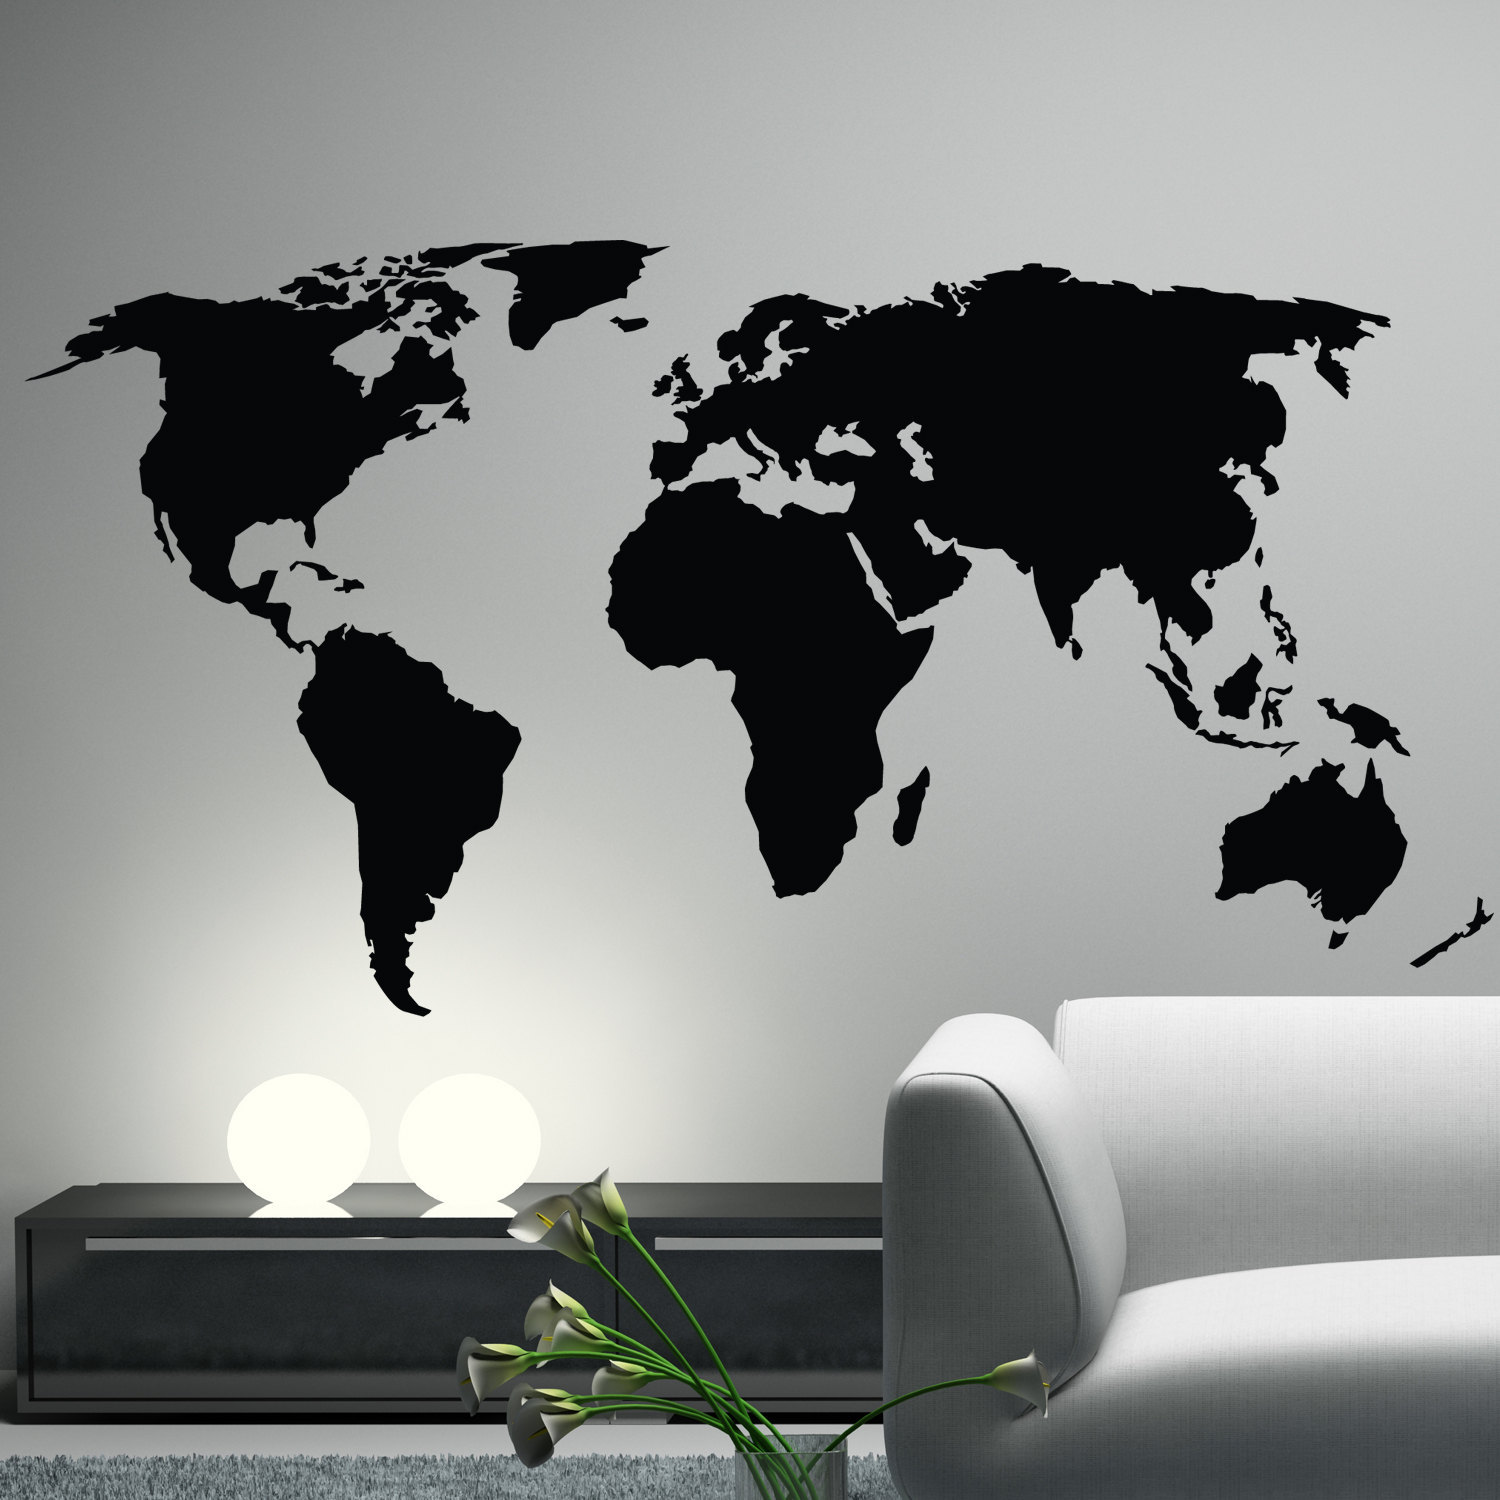 World Map Wall Decal Sticker World Country Atlas The By